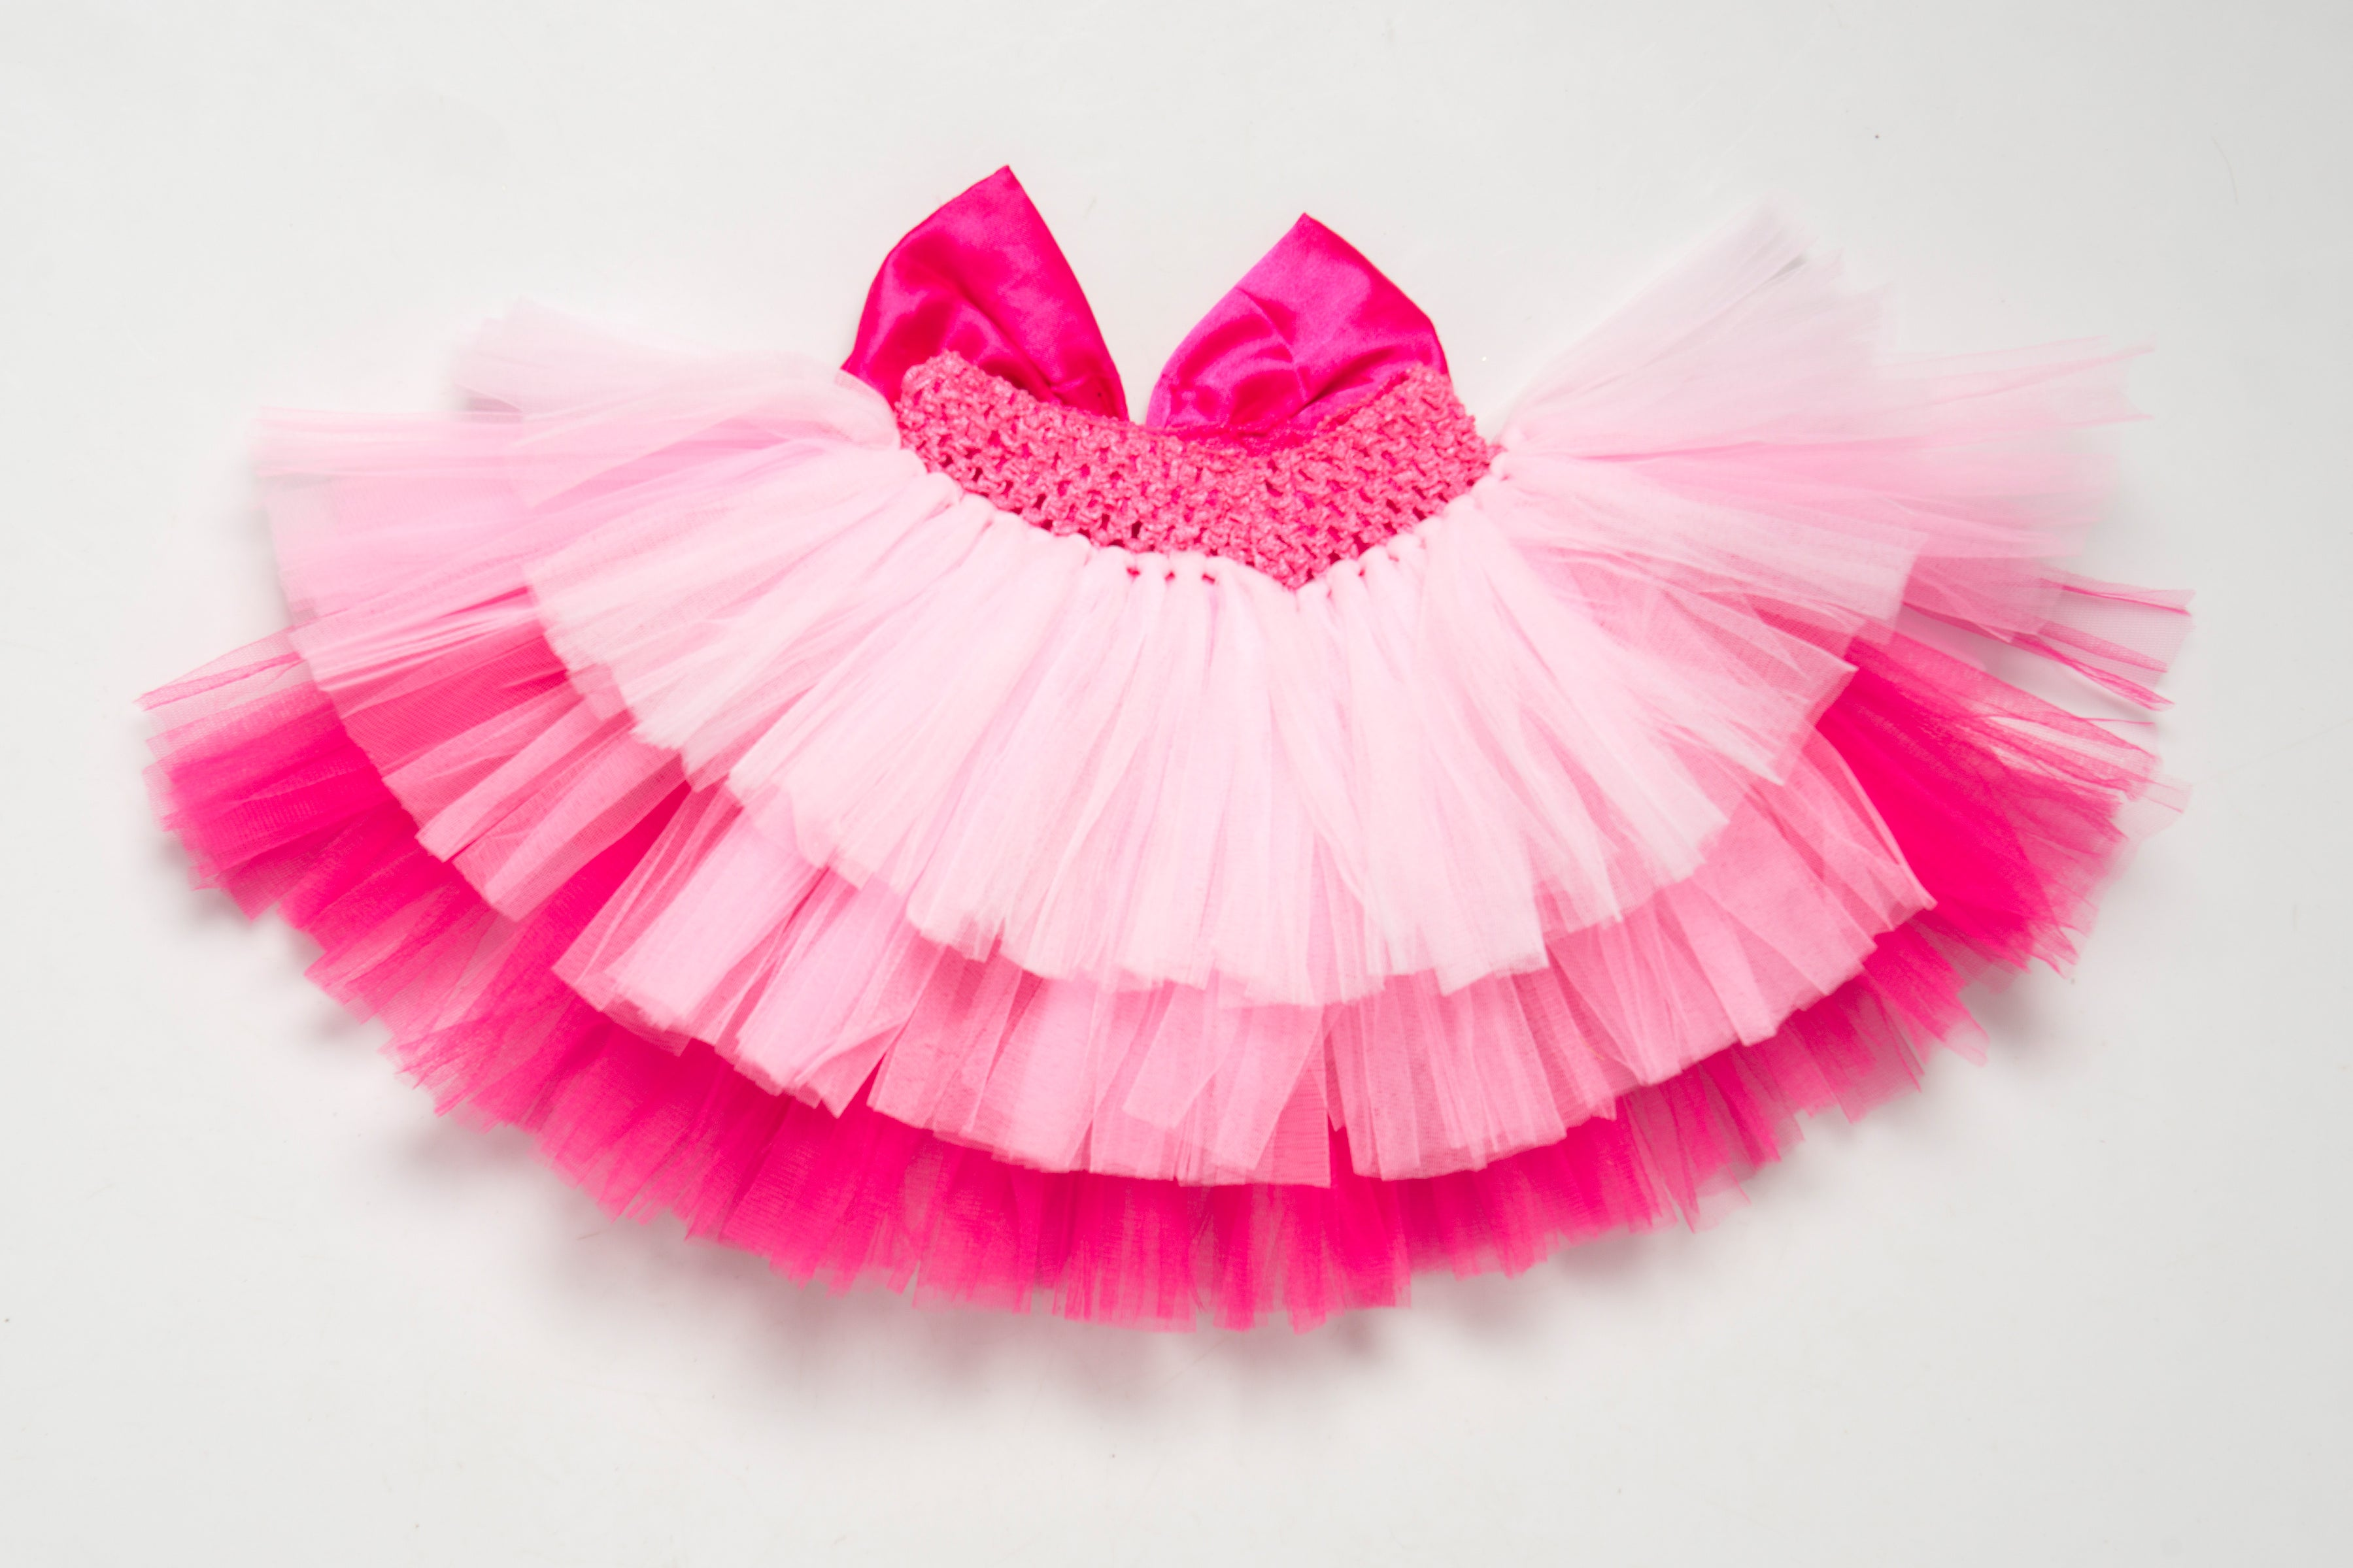 Pink Layers Tutu Skirt  with Bow